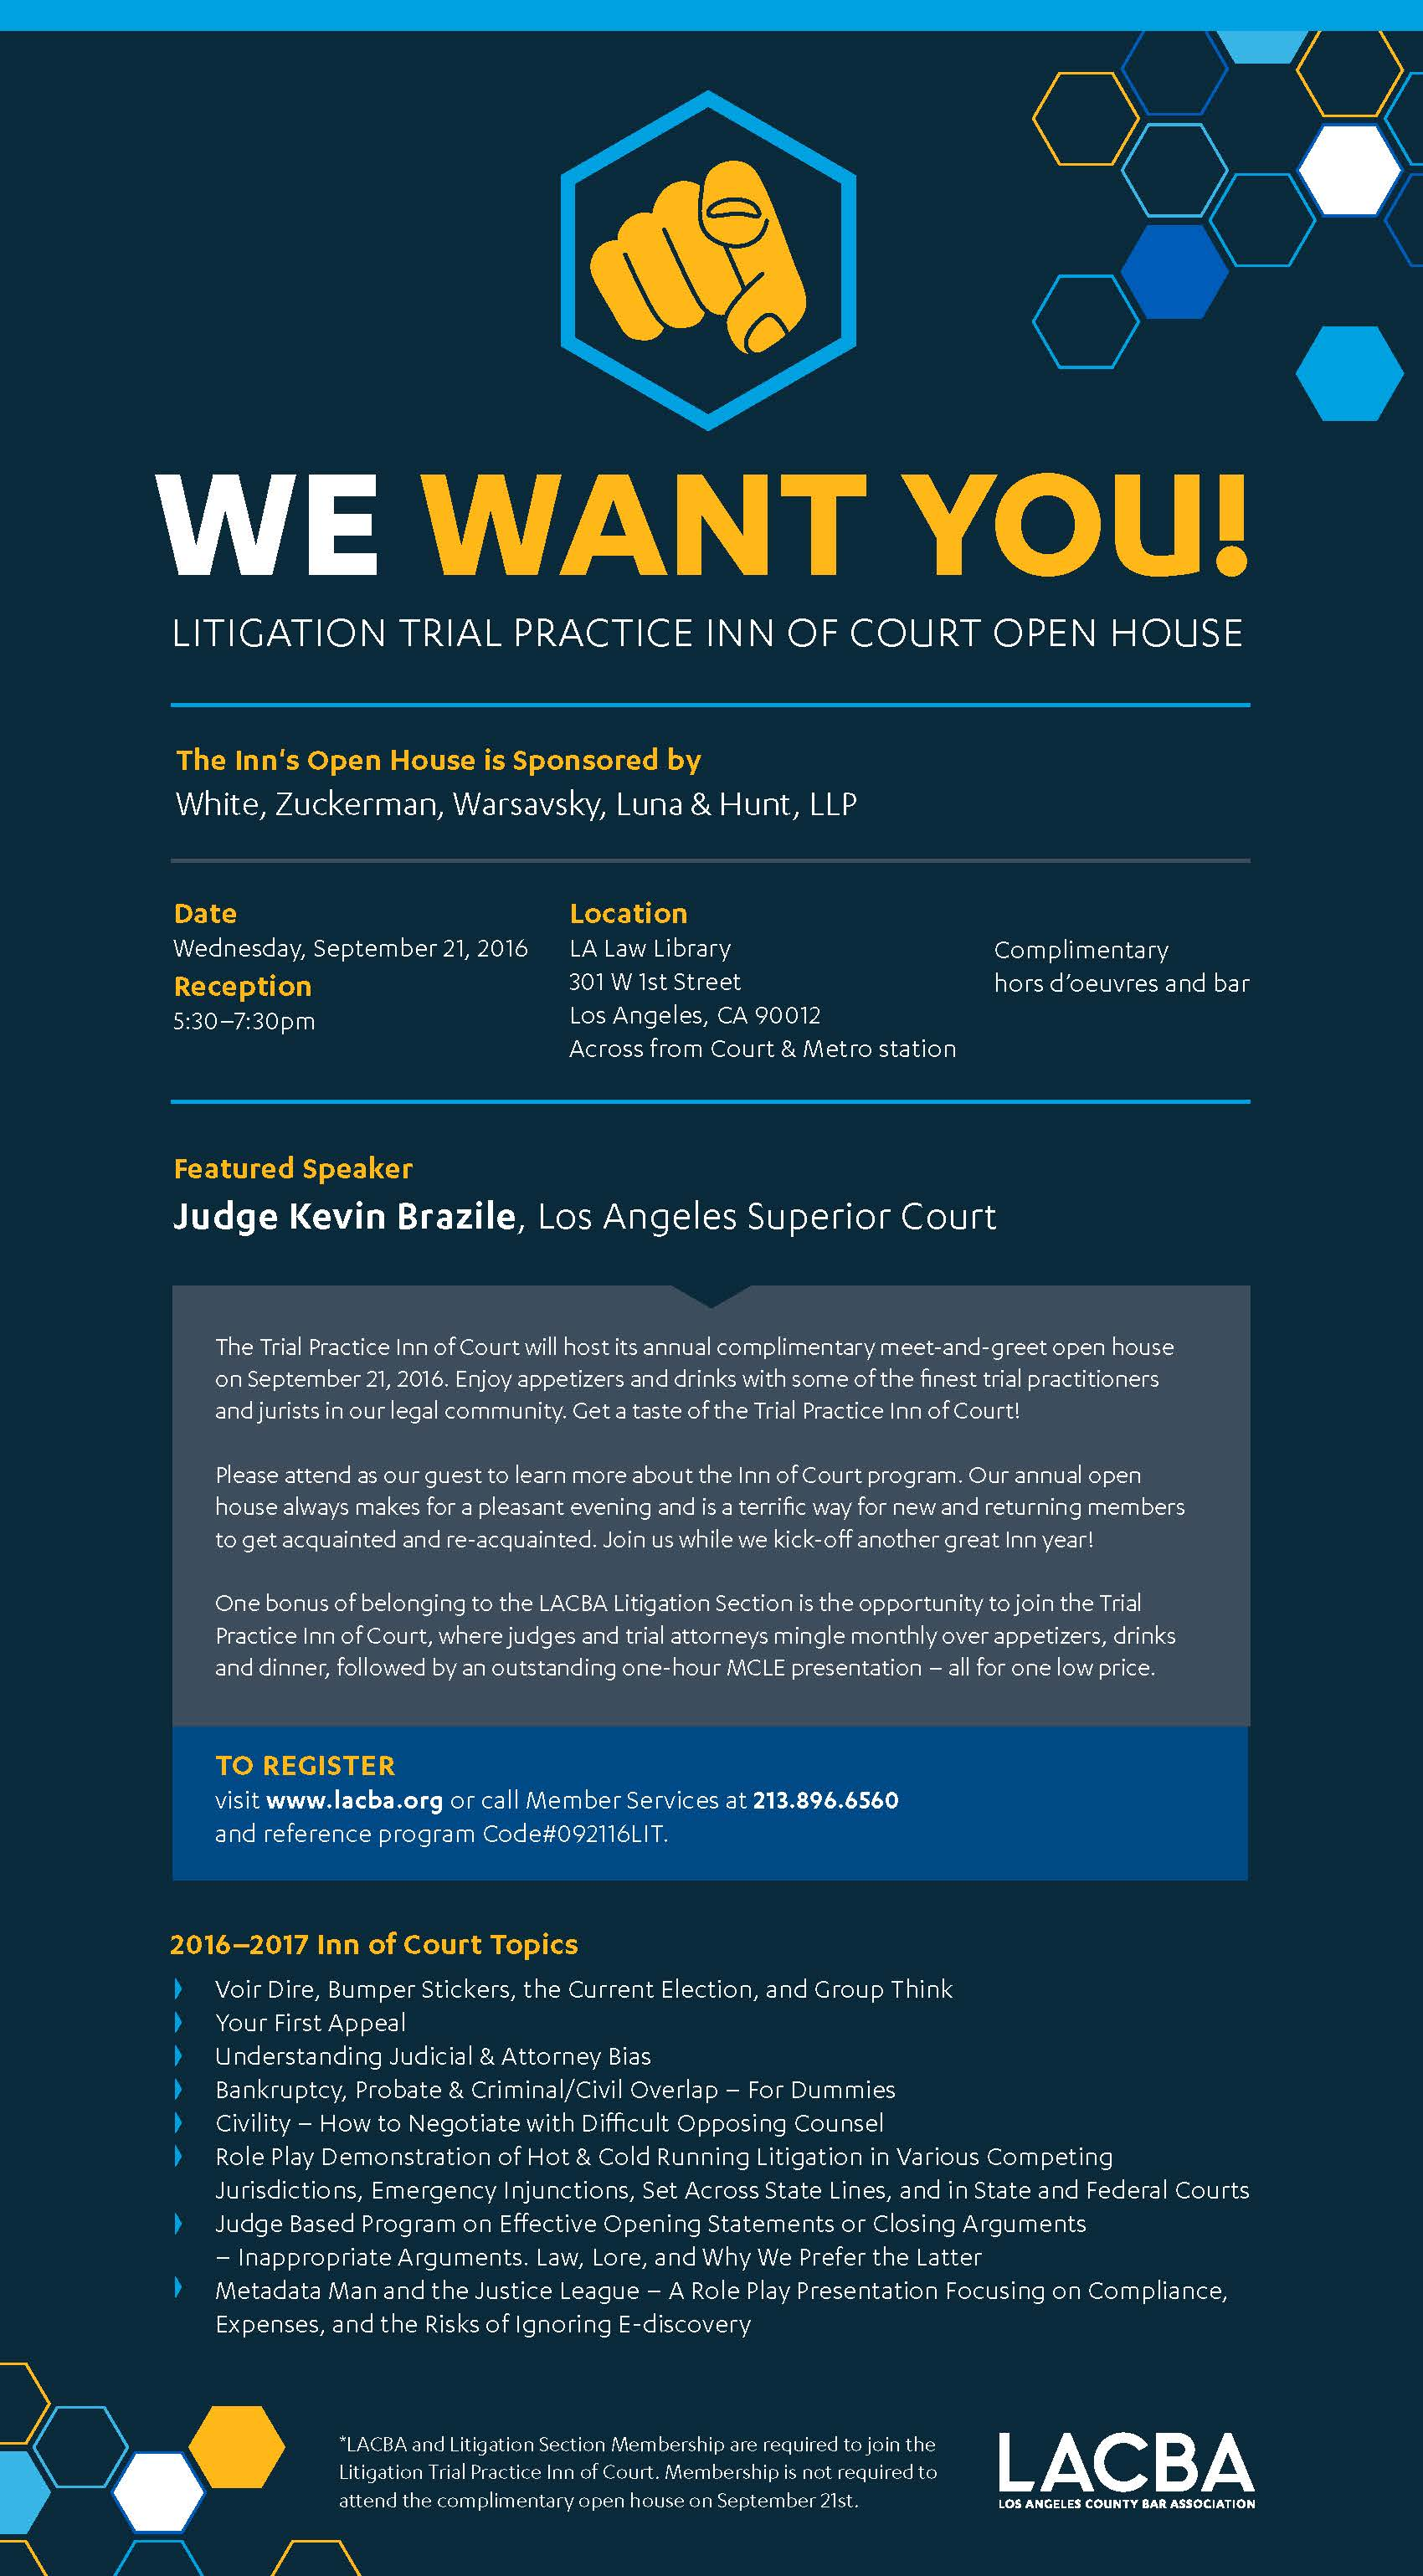 Litigation Section Inn of Court Open House